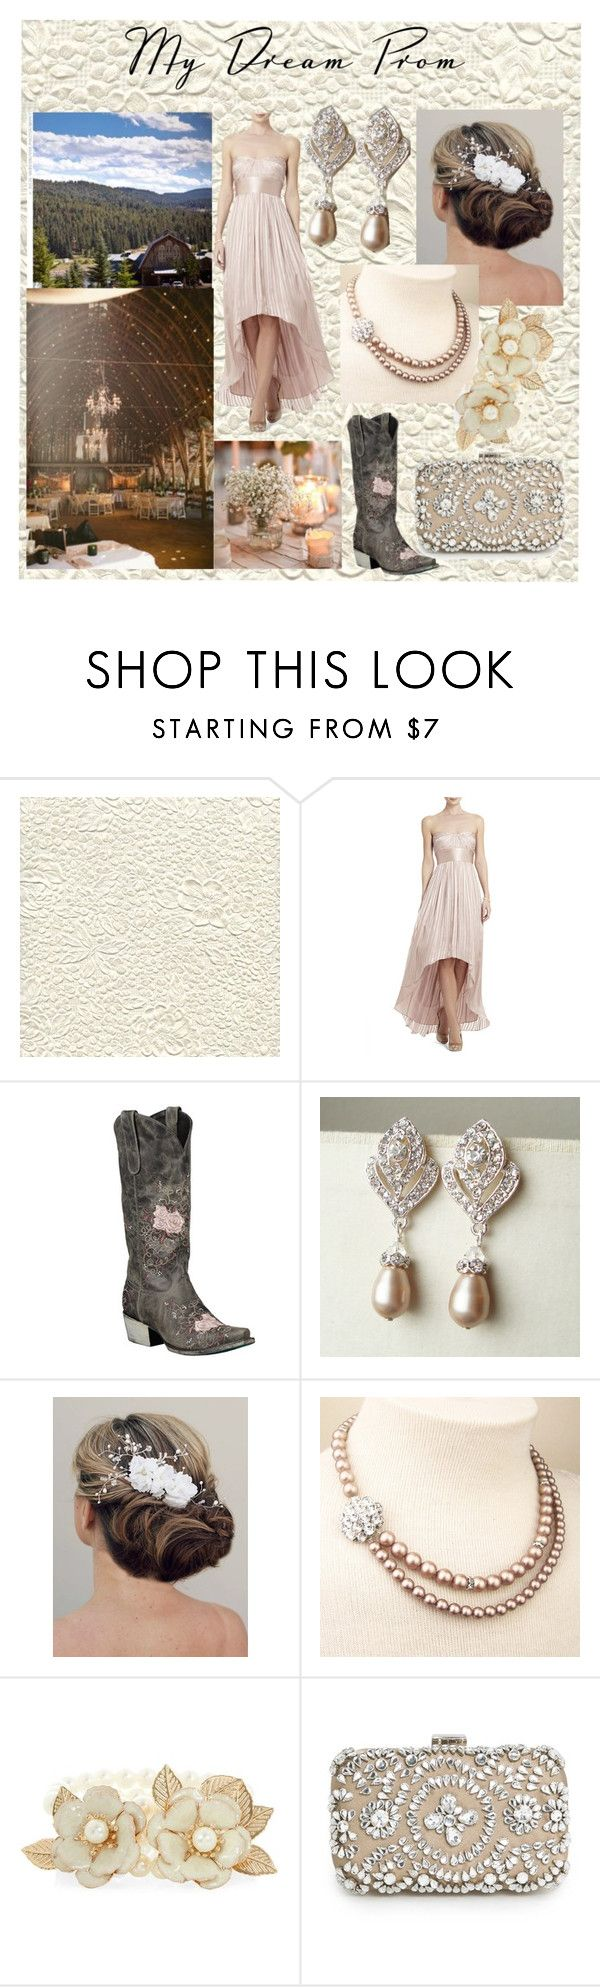 """""""Country Prom"""" by lemcelfresh ❤ liked on Polyvore featuring BCBGMAXAZRIA, Lane, MANGO, rustic, country, Prom, dressy and mydreamprom"""